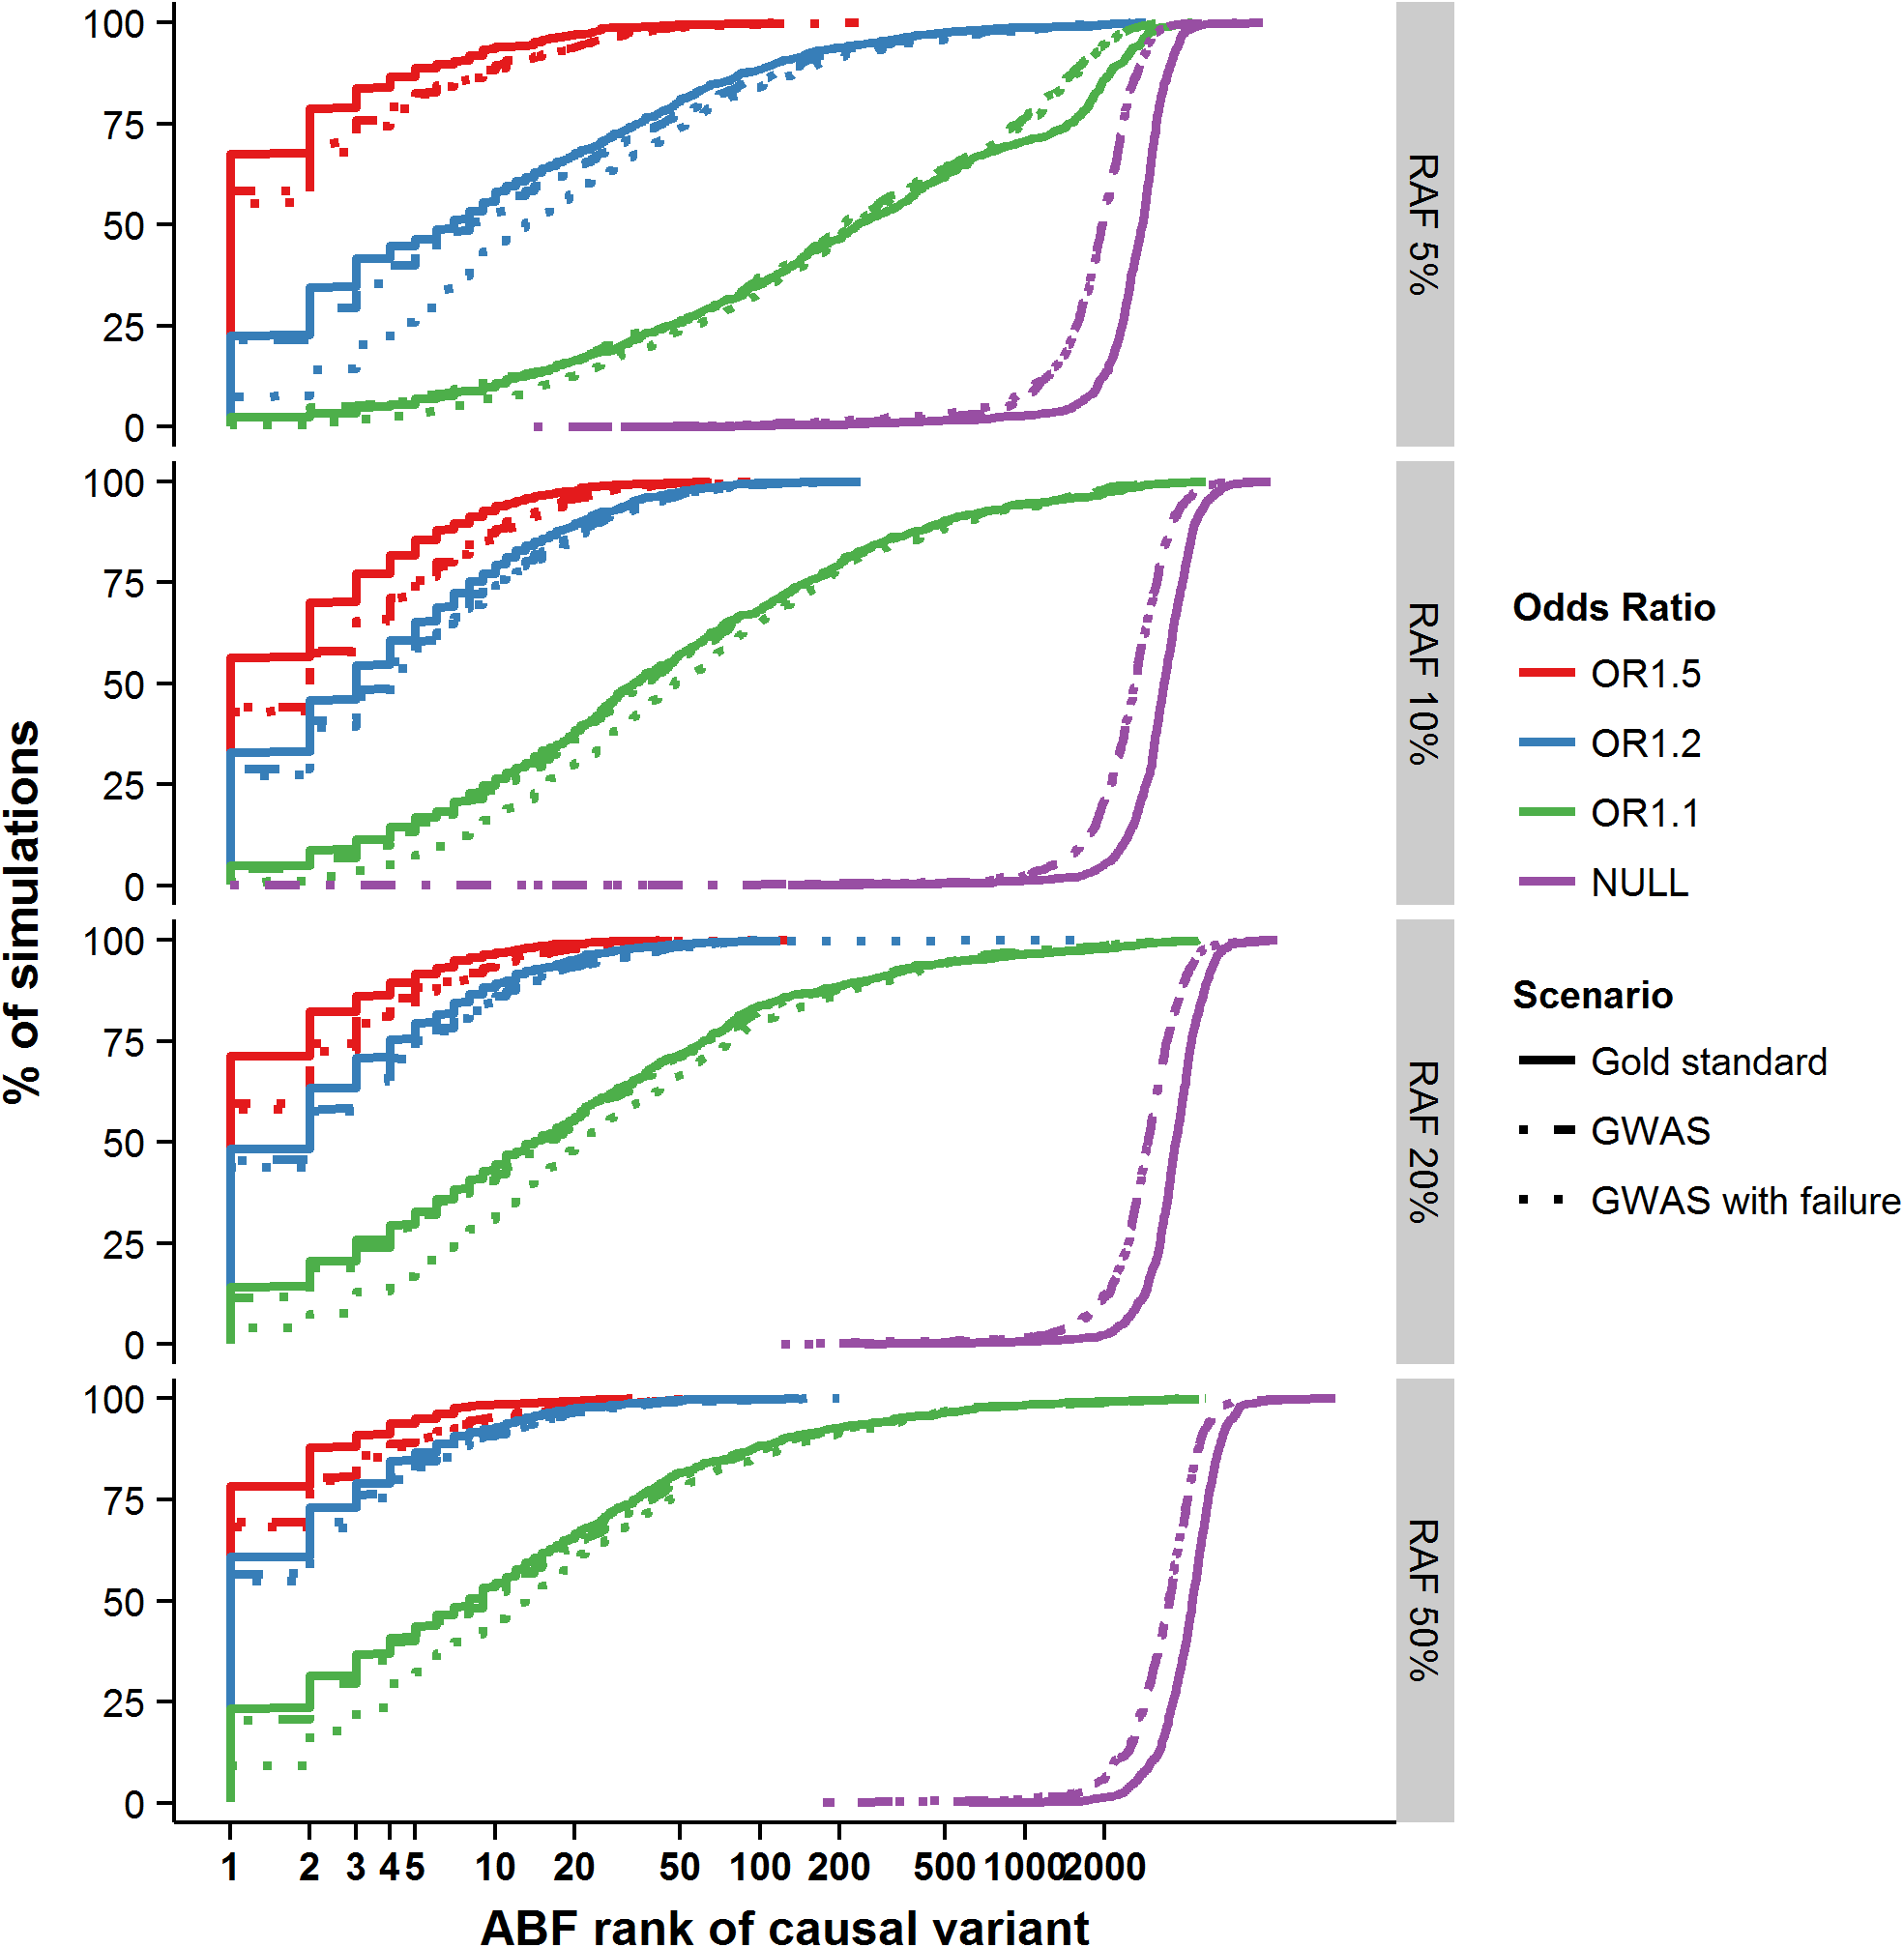 Ranking of the causal variant across simulated loci.